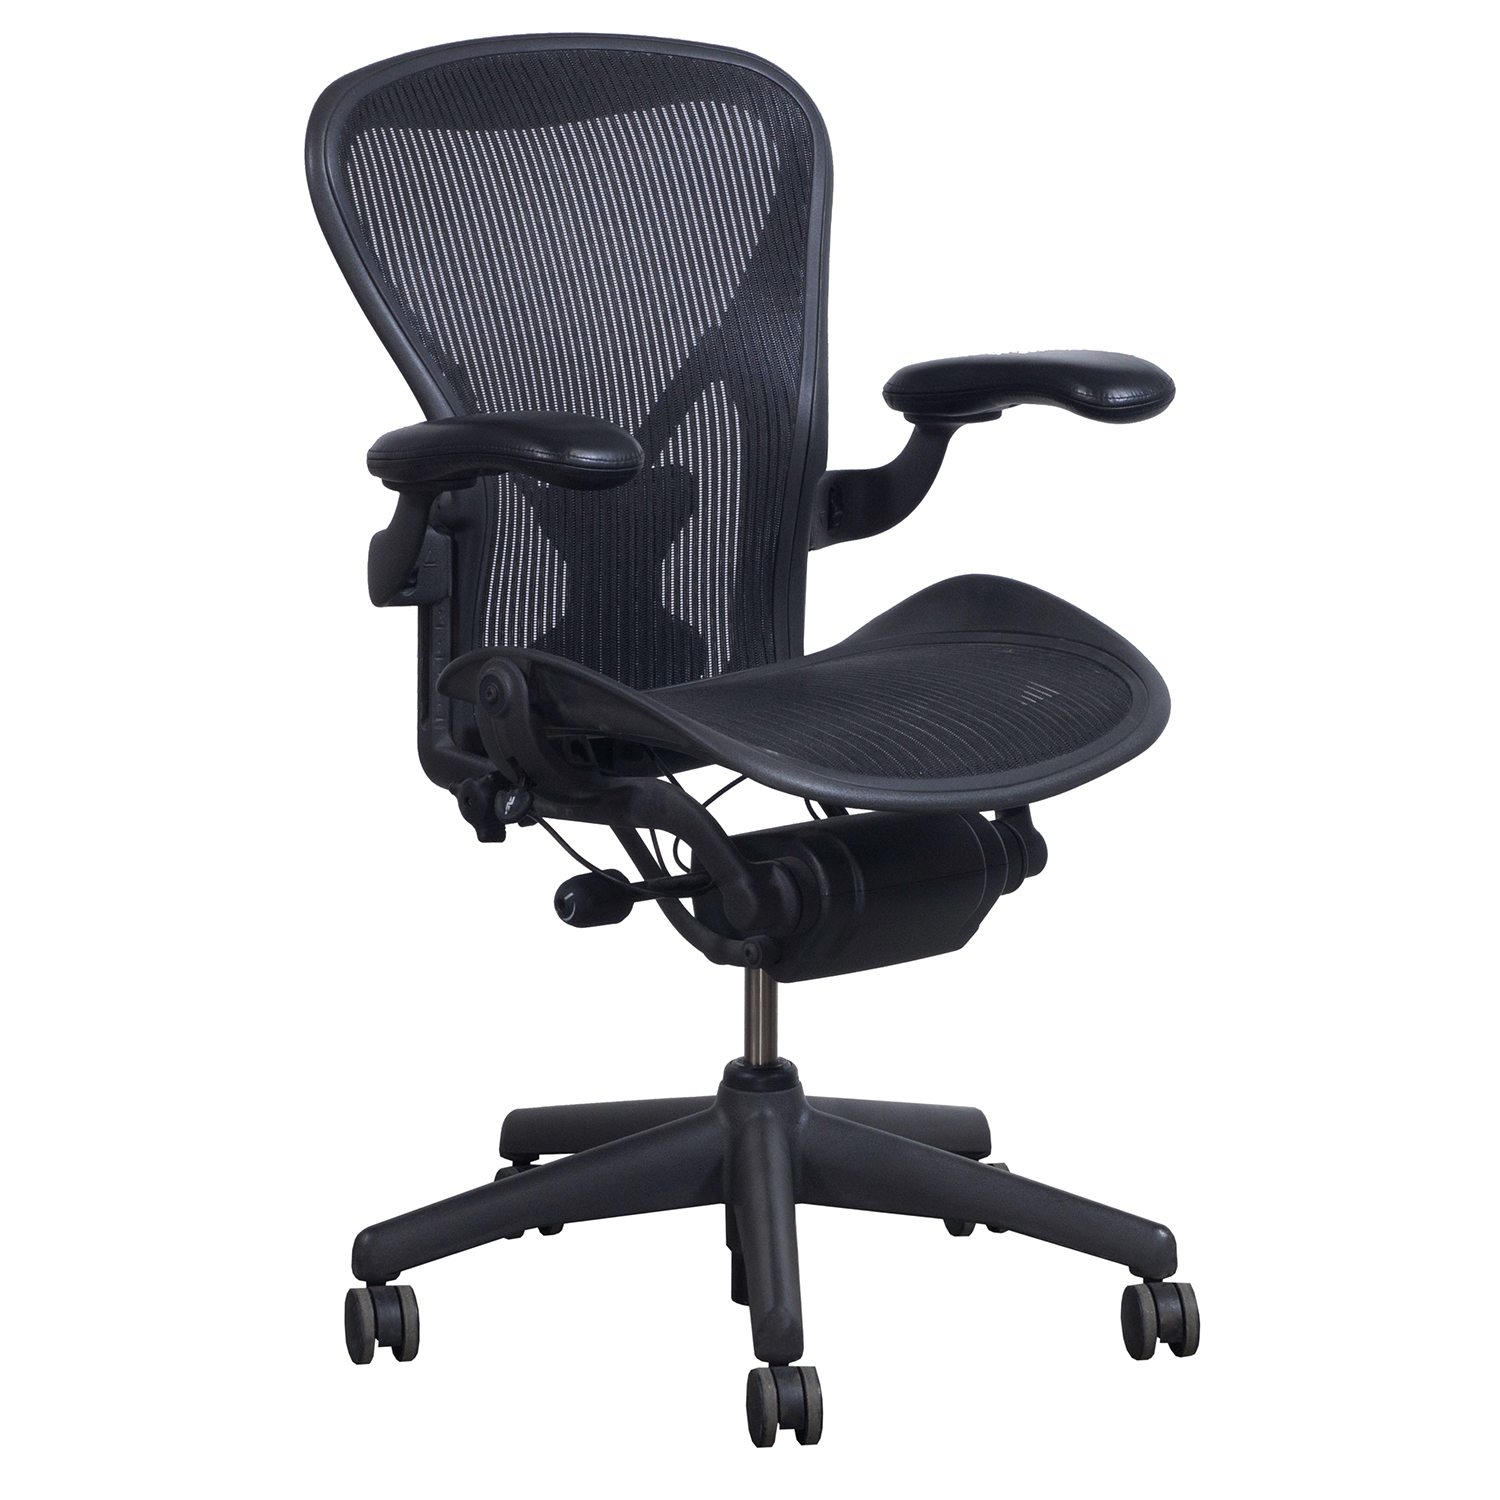 posturefit chair folding chairs for sale wholesale herman miller aeron used size b leather arm